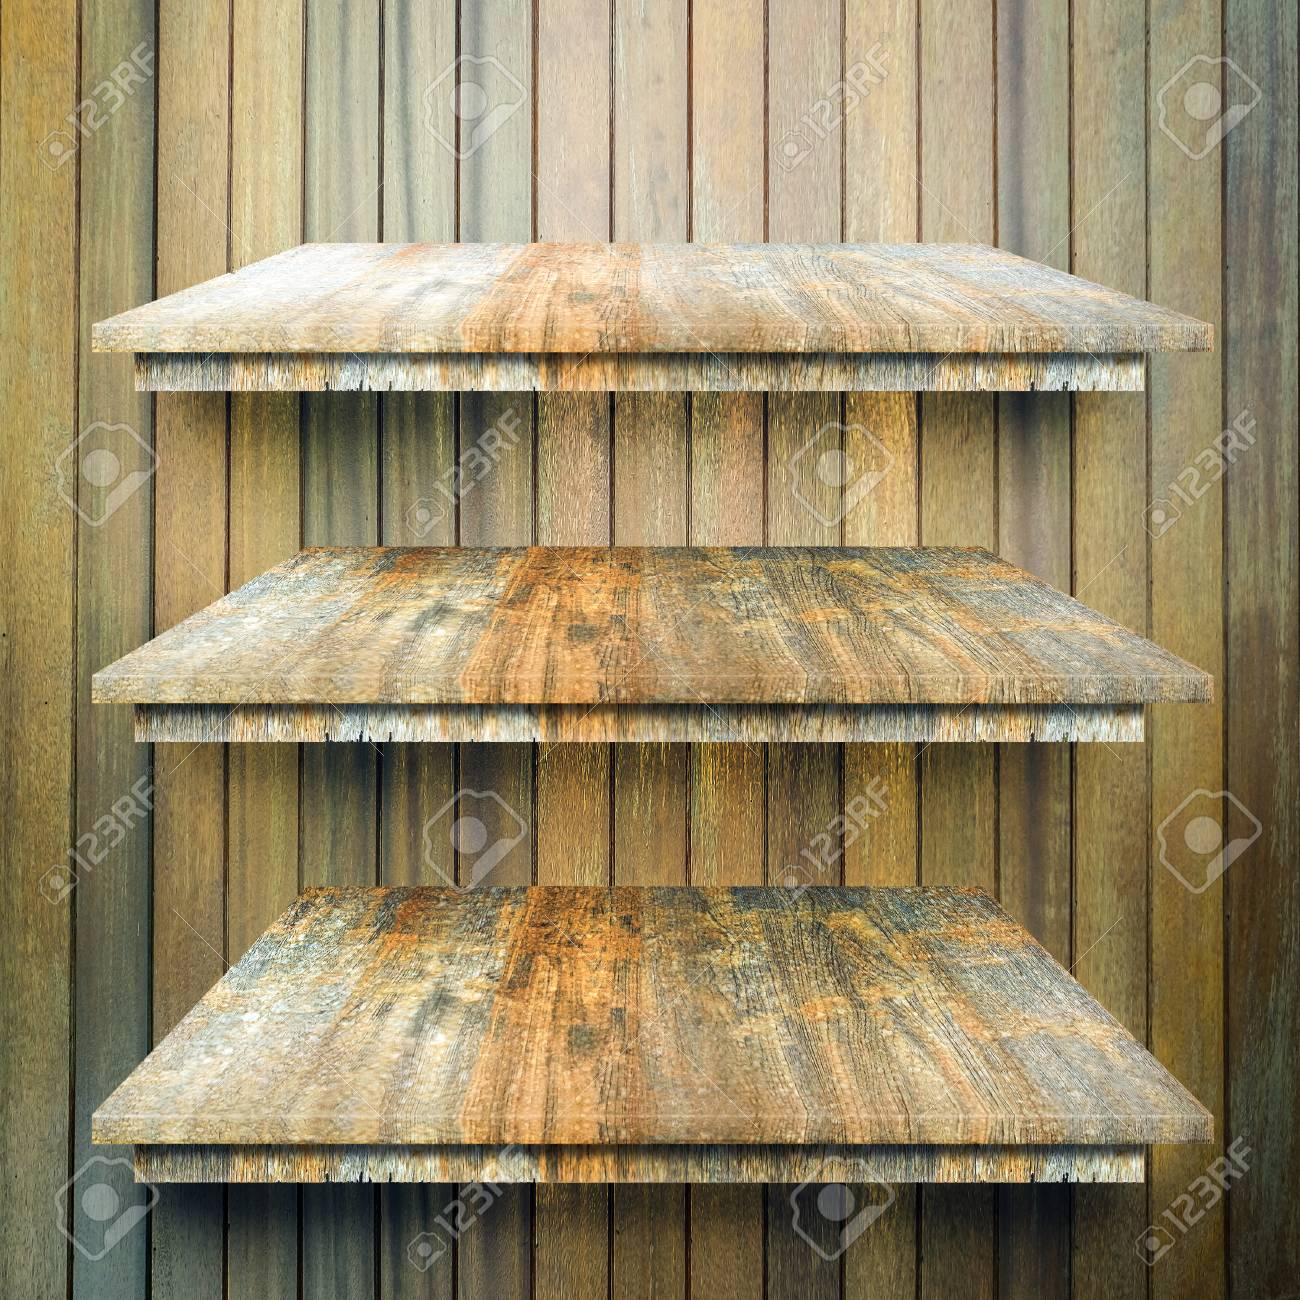 Empty Top 3 Wood Layer Shelves Table With Wooden Wall Background